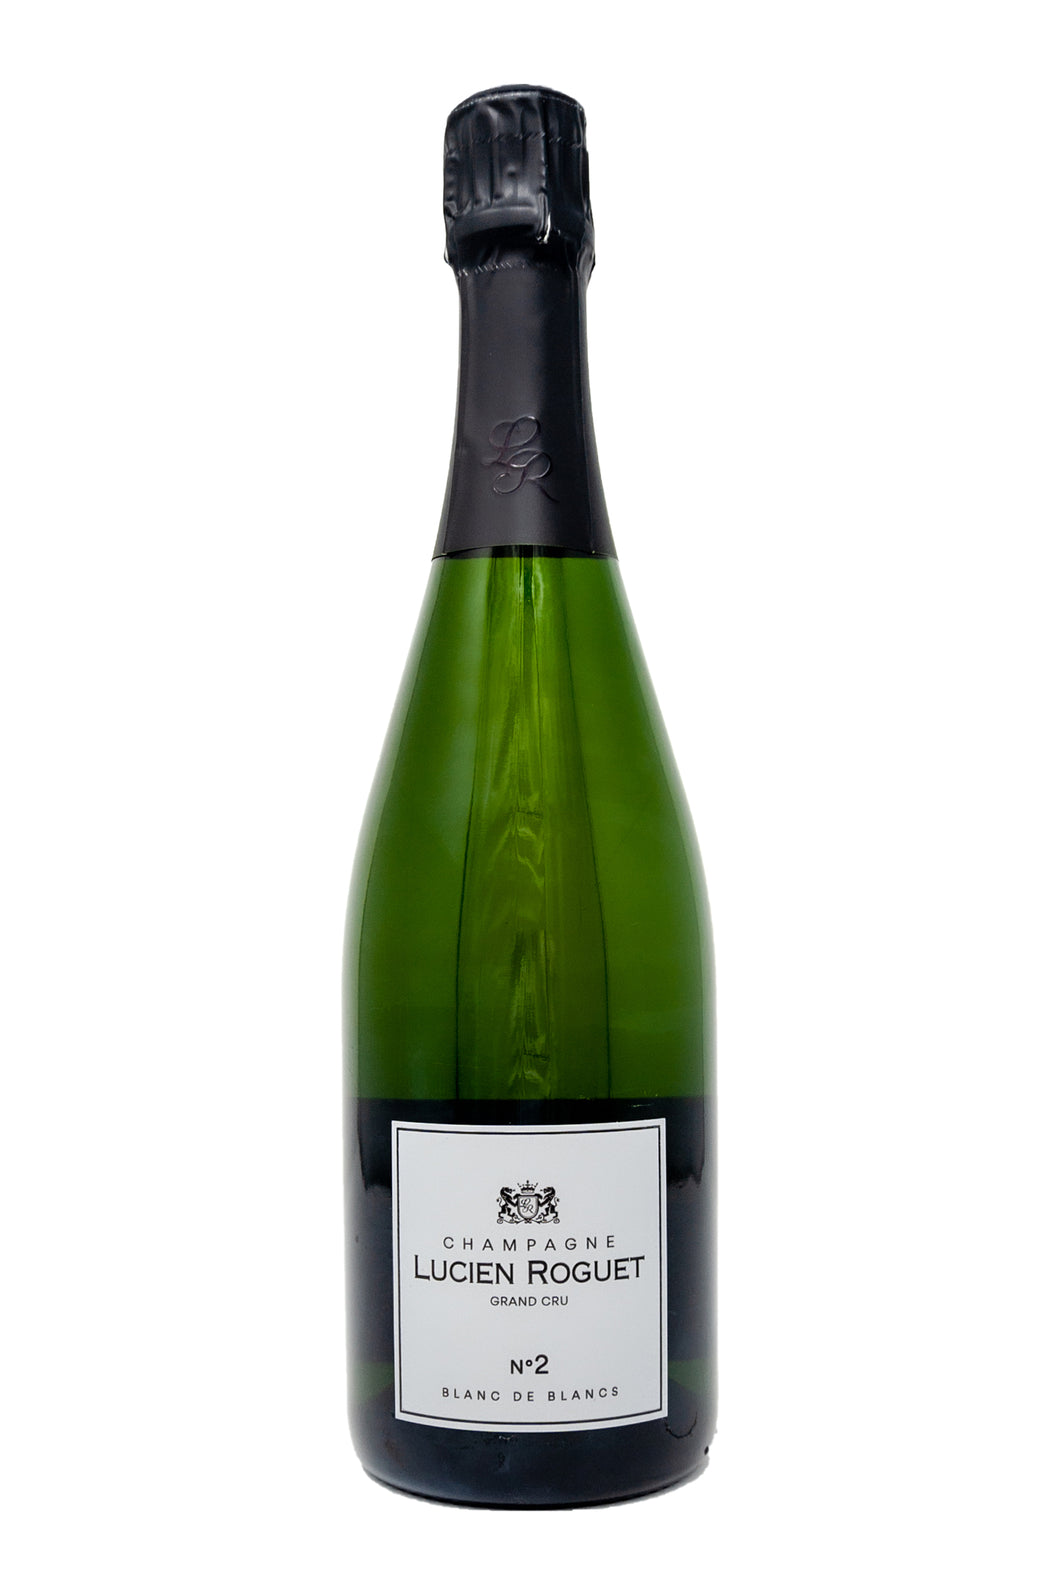 Lucien Roguet - No. 2 - Blanc de Blanc - Grand Cru - 750 ml